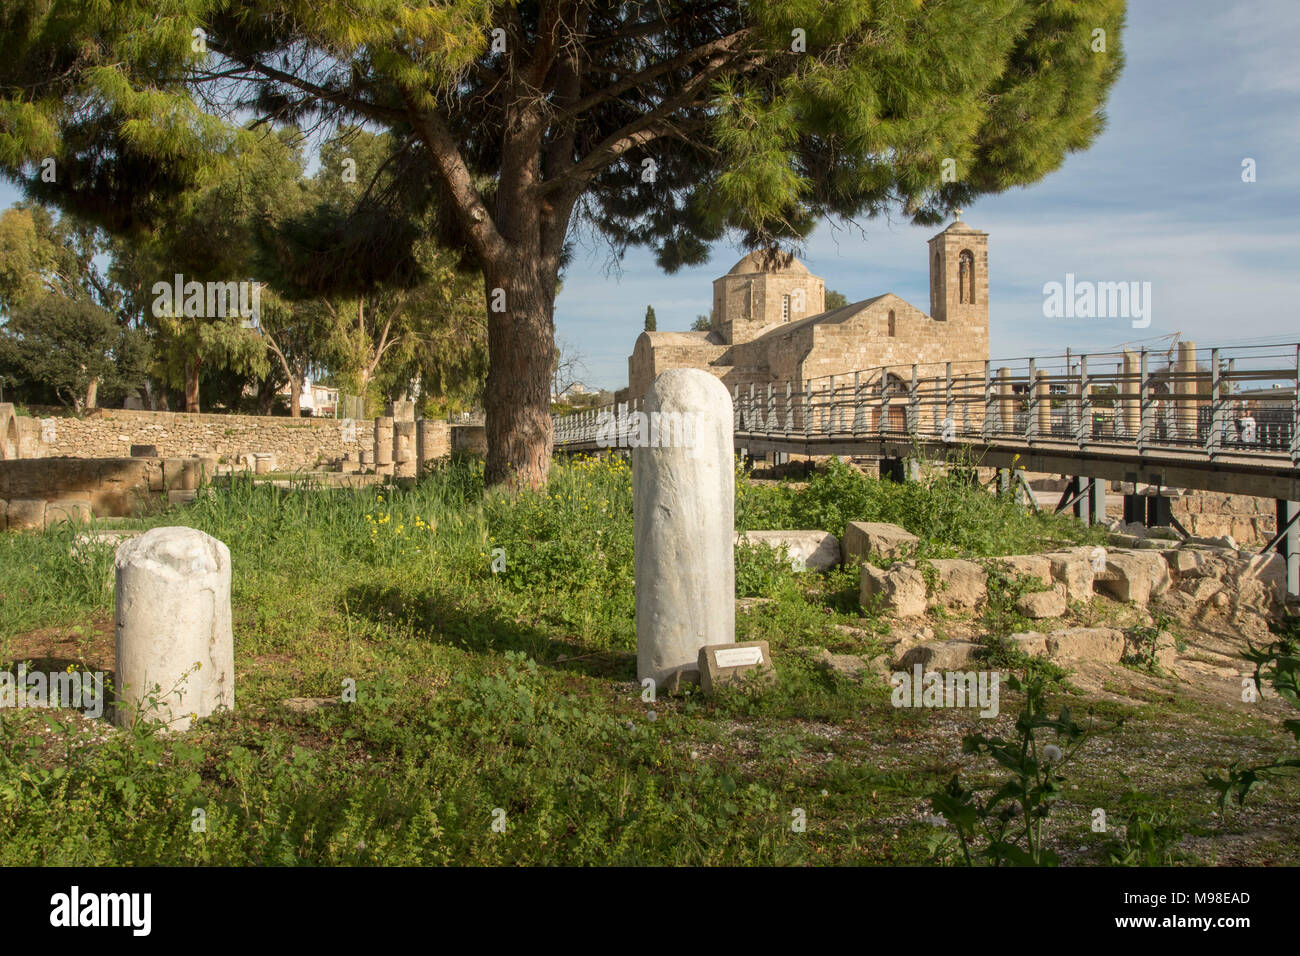 St Paul's Pillar Kato Pafos, Mediterranean religious holy site in paphos, cyprus, europe - Stock Image